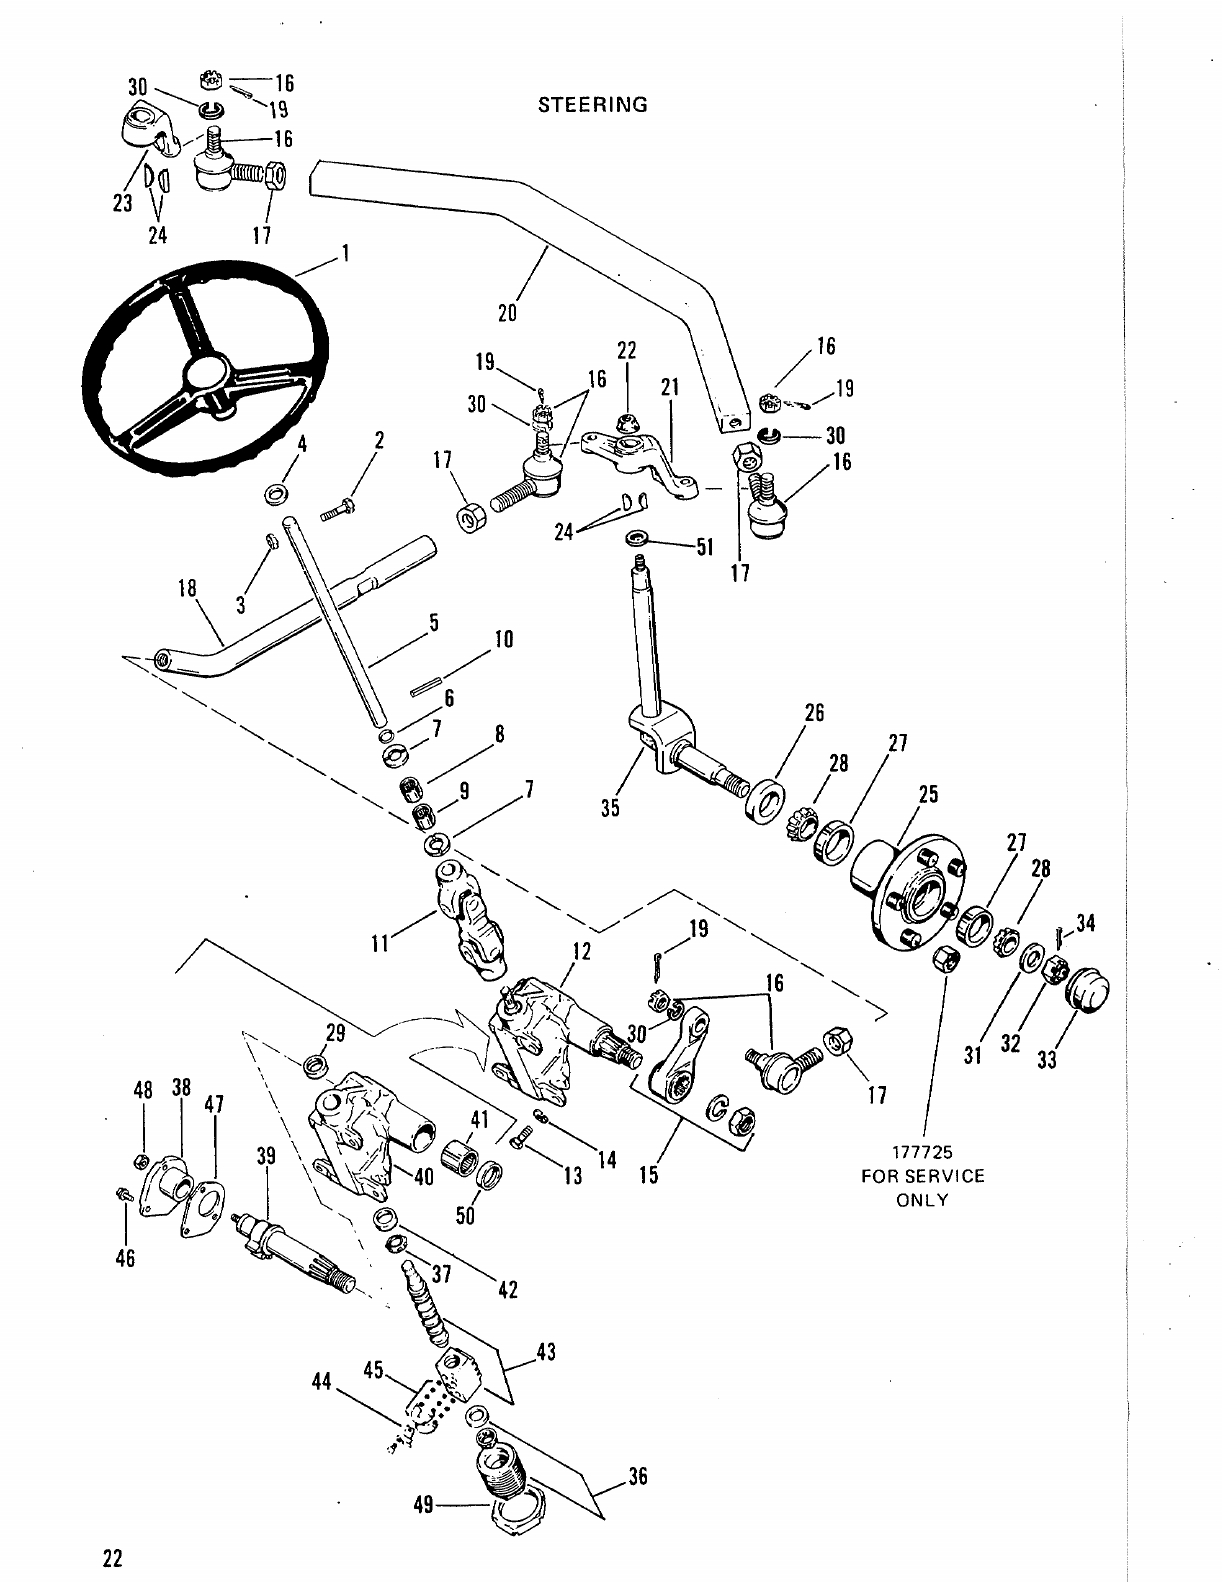 Page 22 of Simplicity Lawn Mower System 9020 User Guide